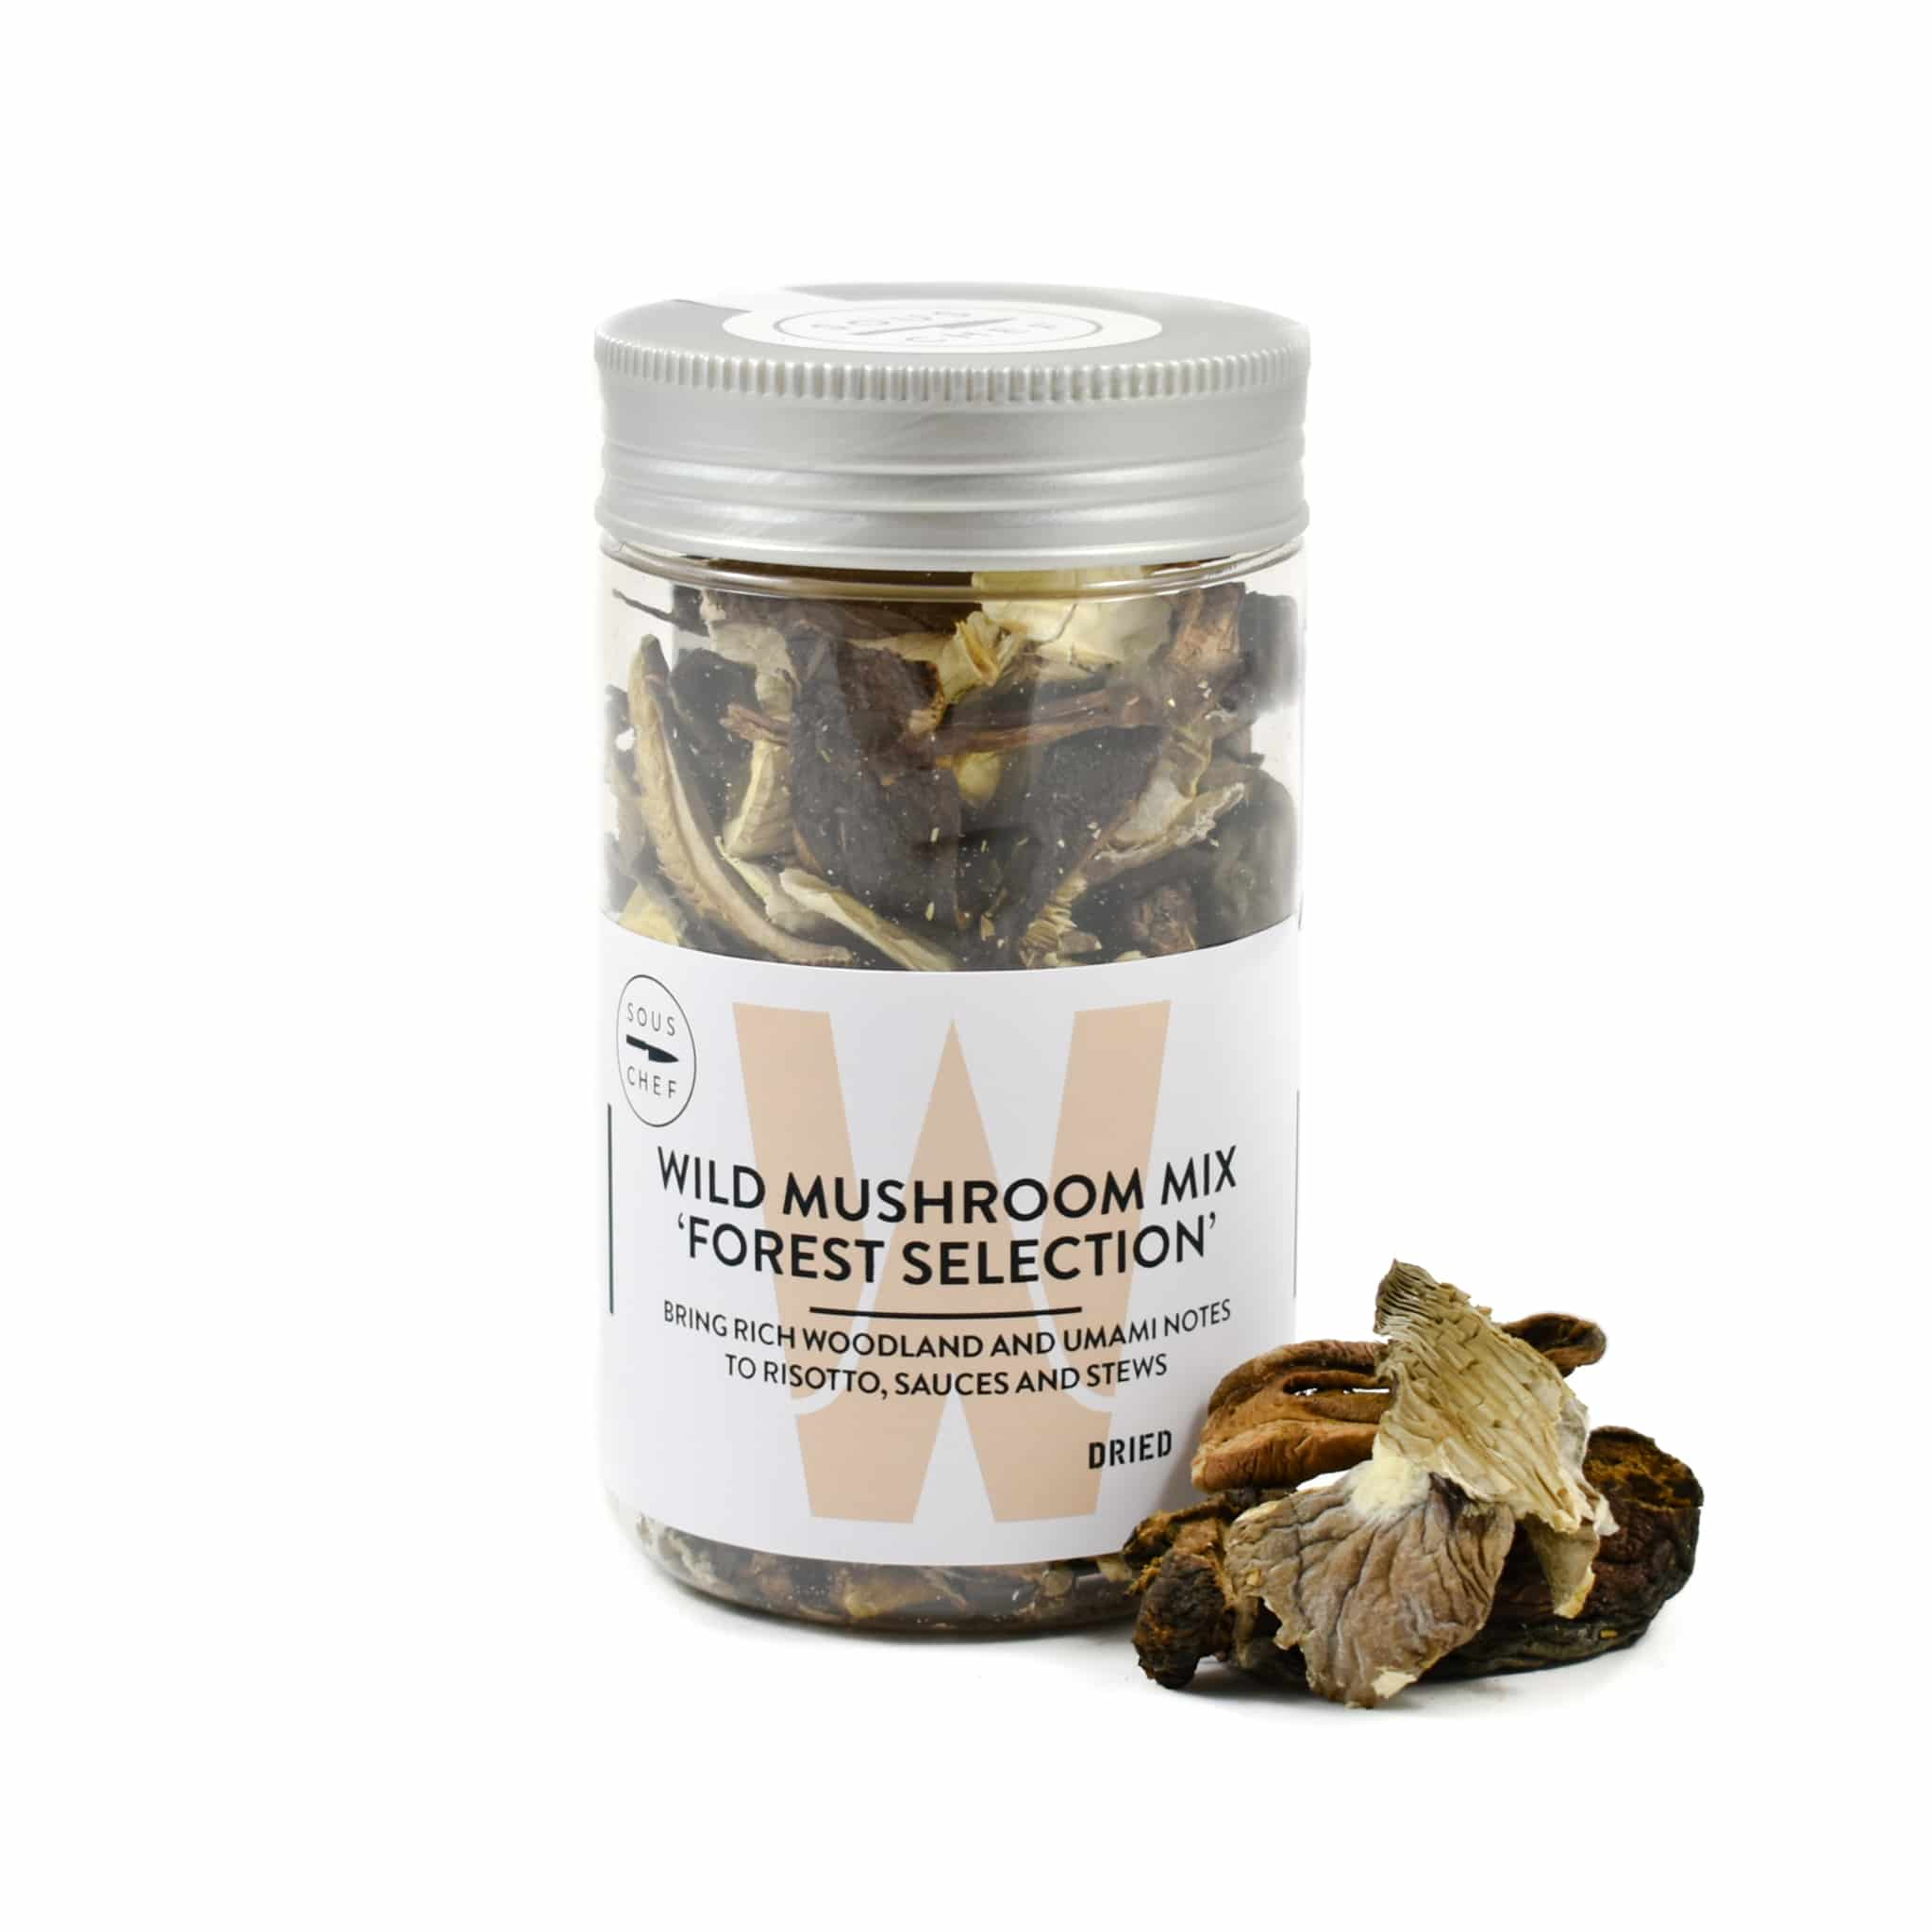 Sous Chef Wild Mushroom Mix - 'Forest Selection'